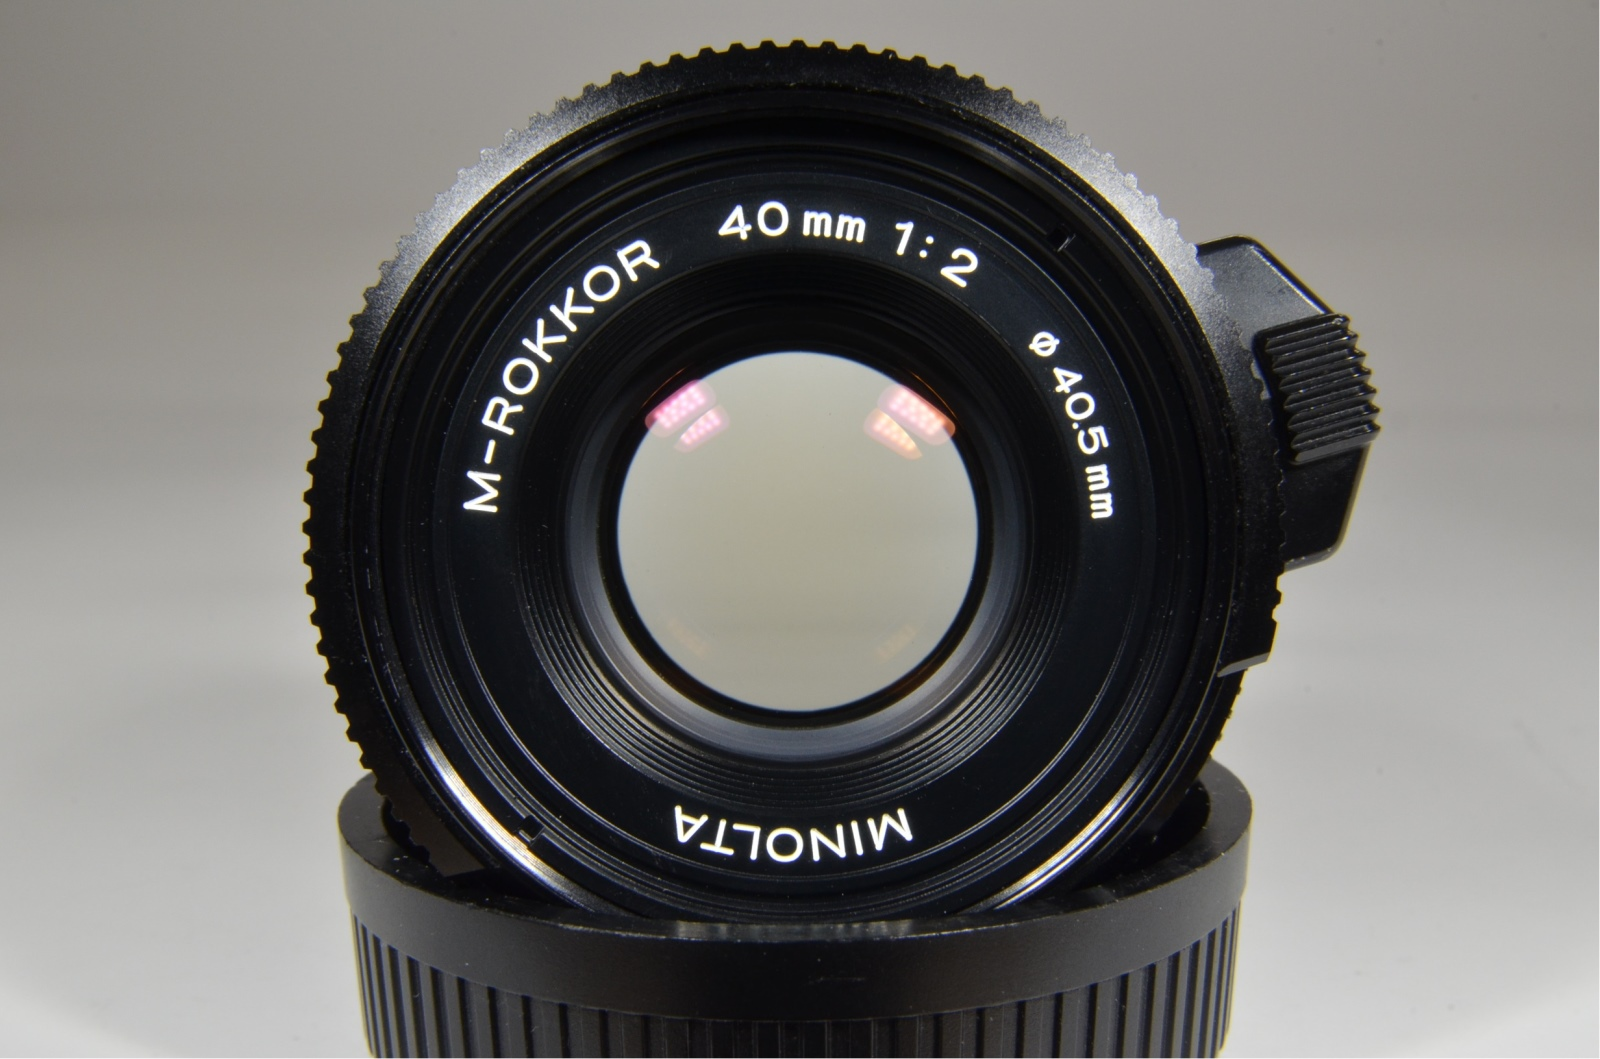 minolta cle film camera with m-rokkor 40mm, 28mm, 90mm and flash